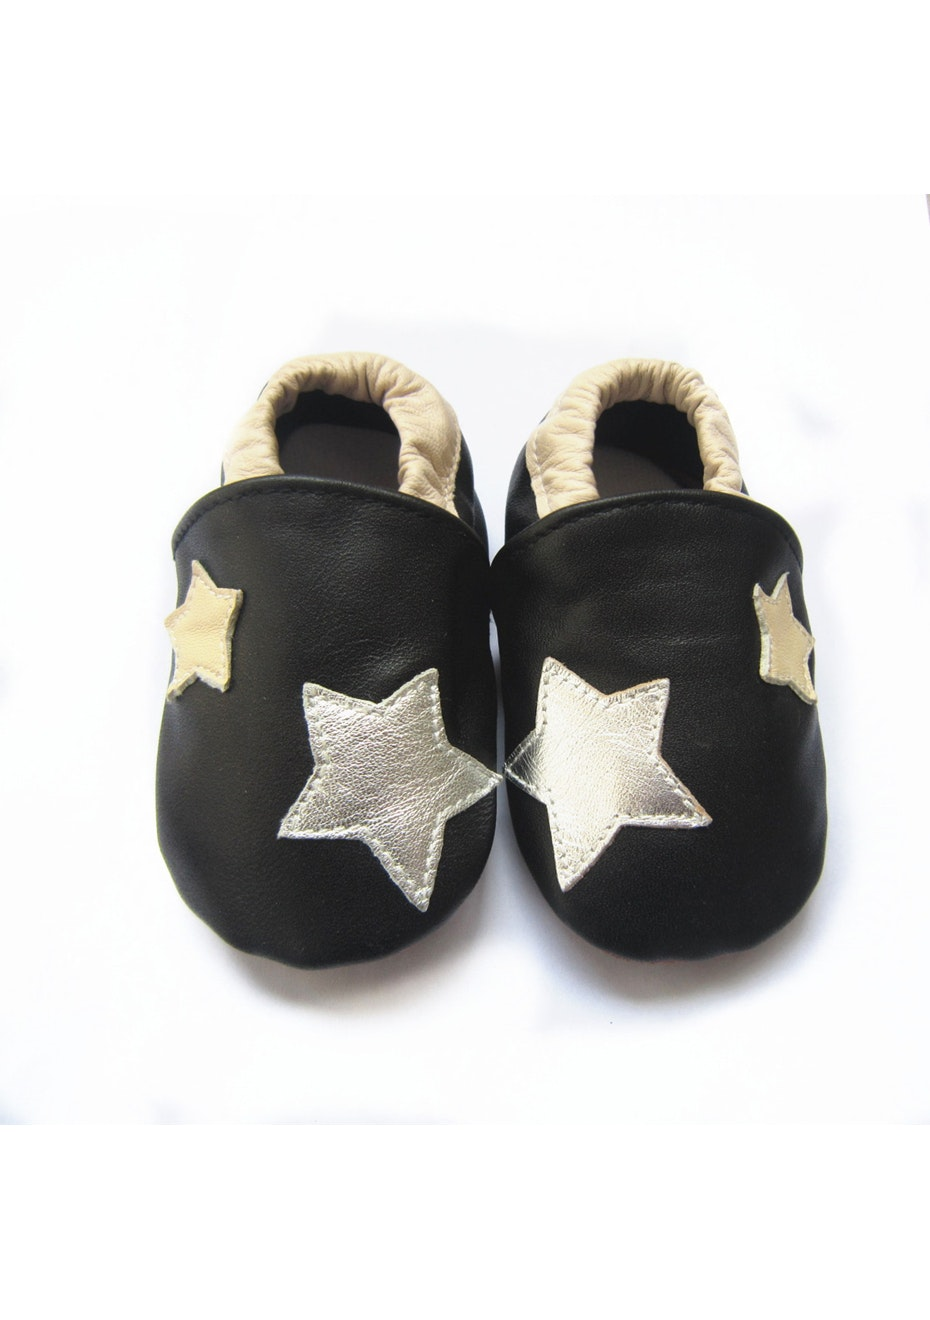 Baby Soft Sole Leather Shoes - Black/Star